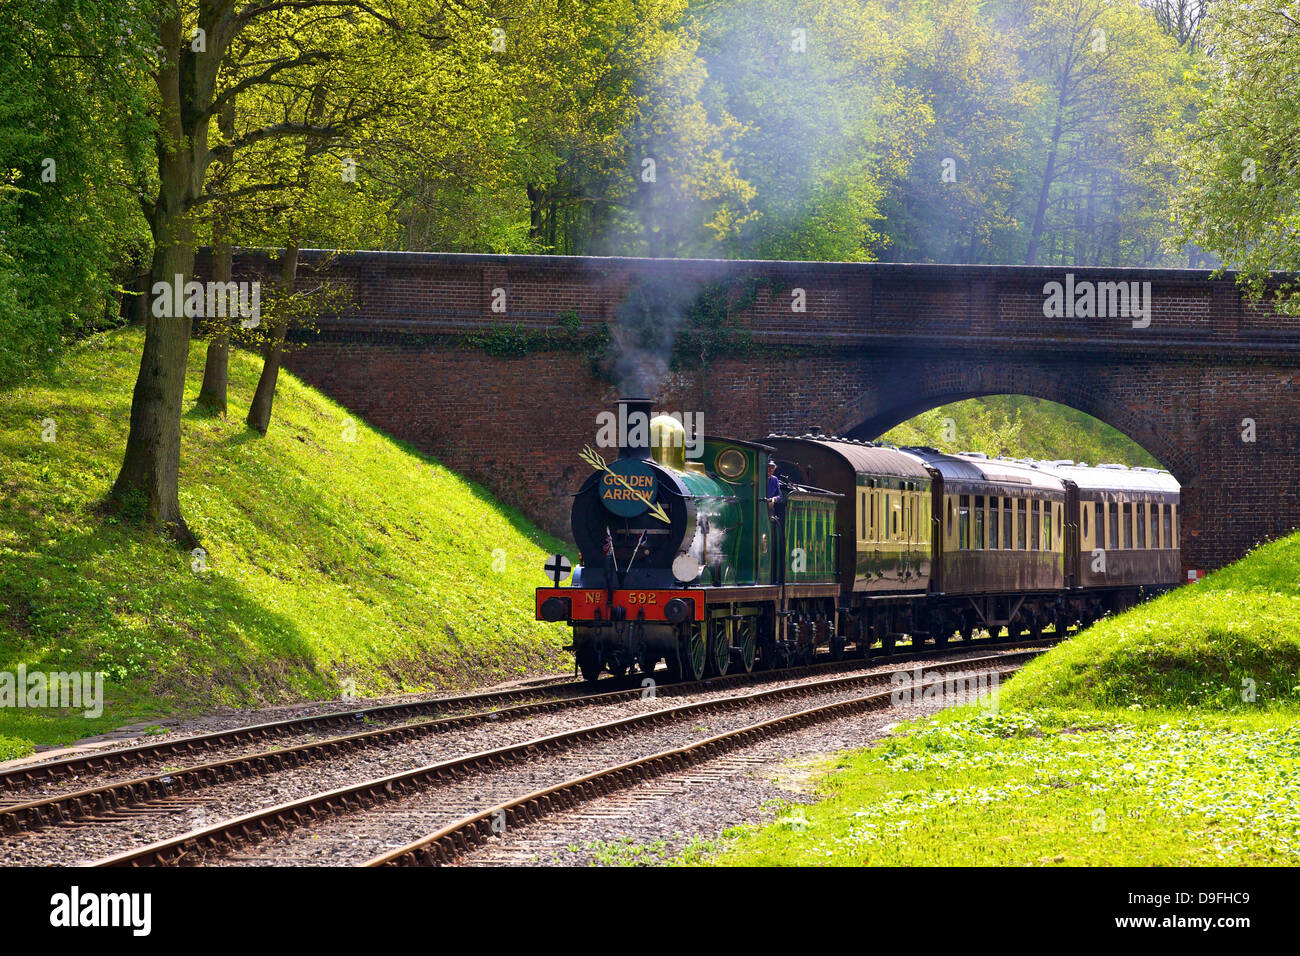 Steam train on Bluebell Railway, Horsted Keynes, West Sussex, England, UK - Stock Image